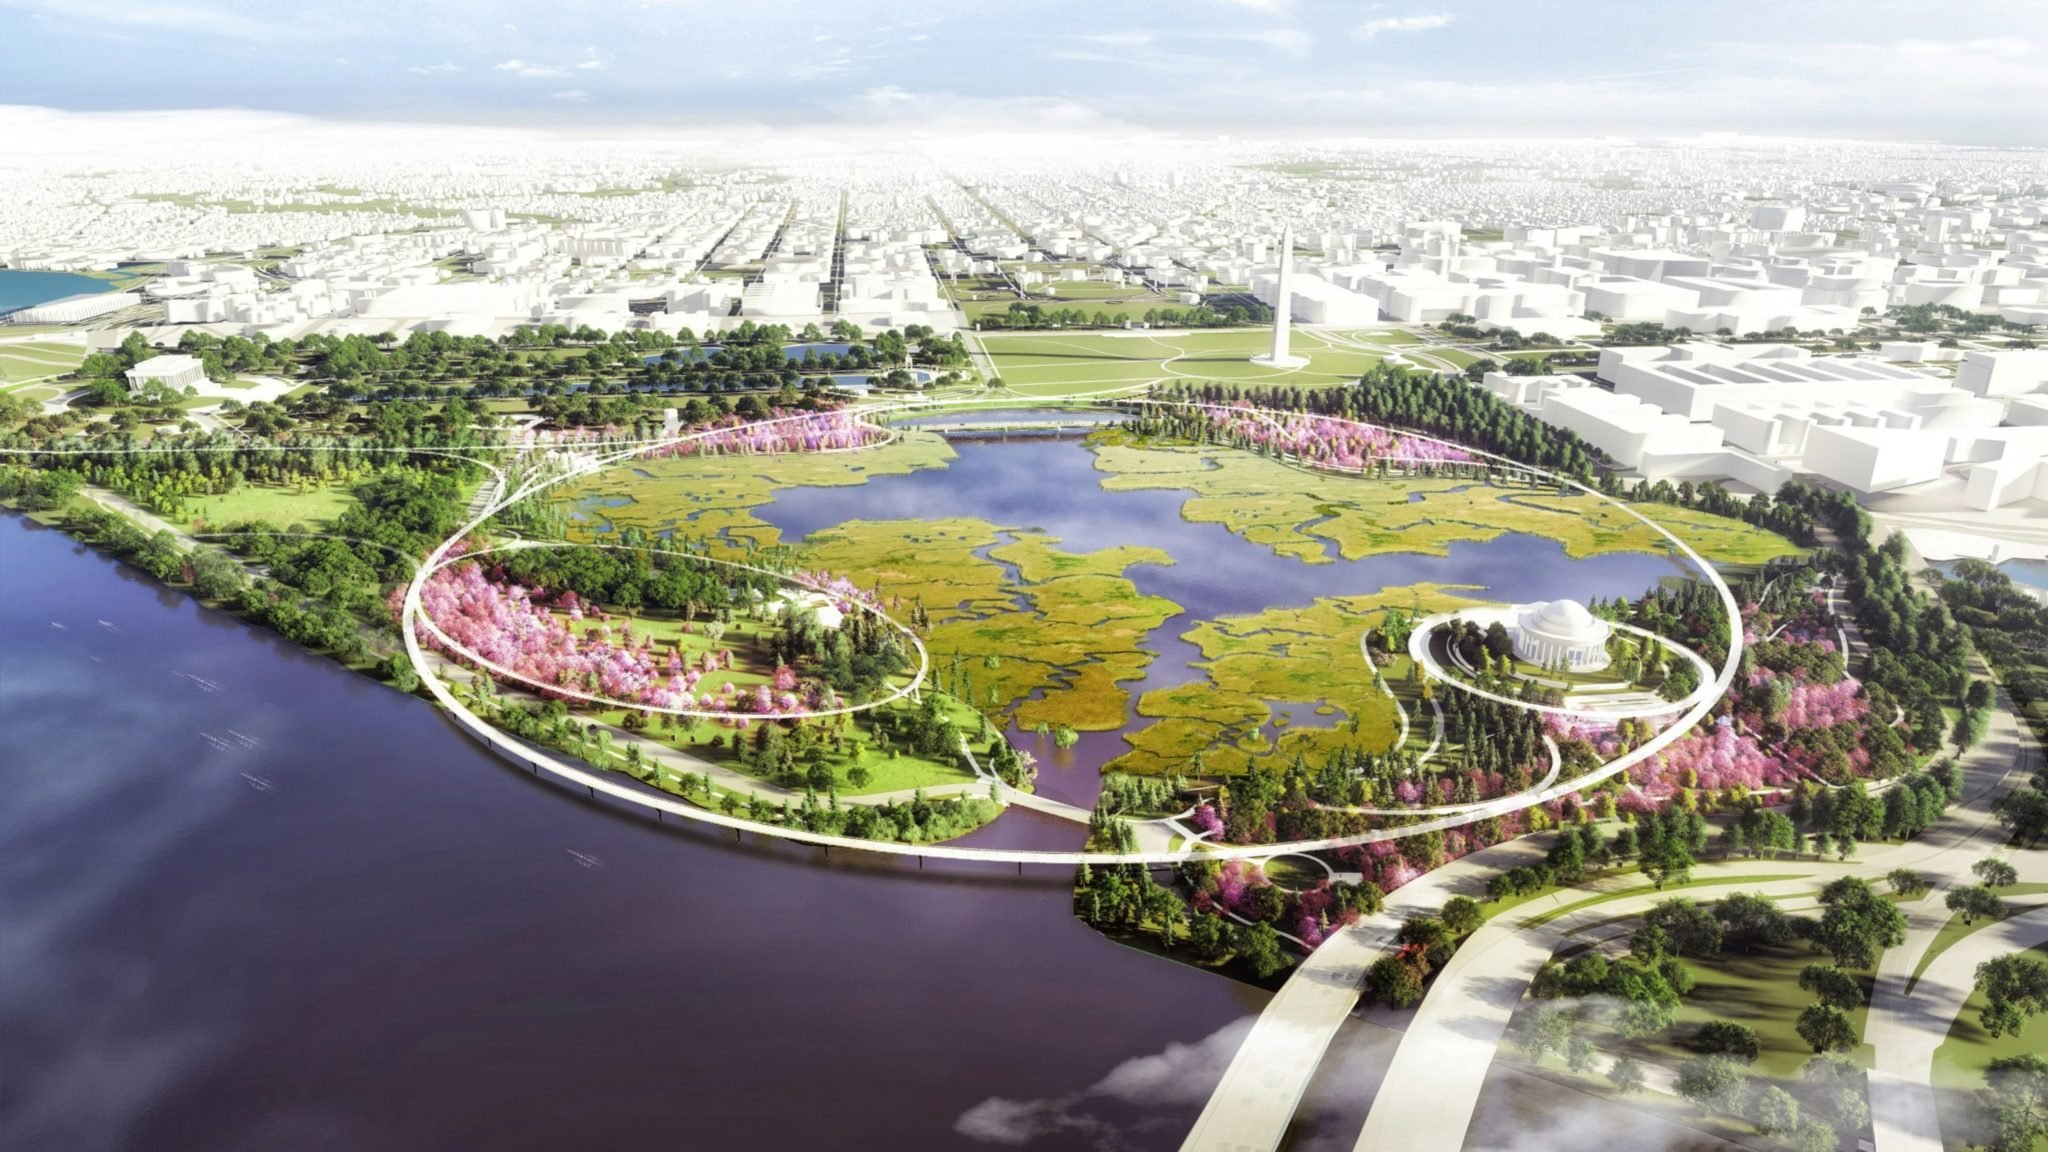 This New Project Imagines What the Tidal Basin Could Look Like in 100 Years